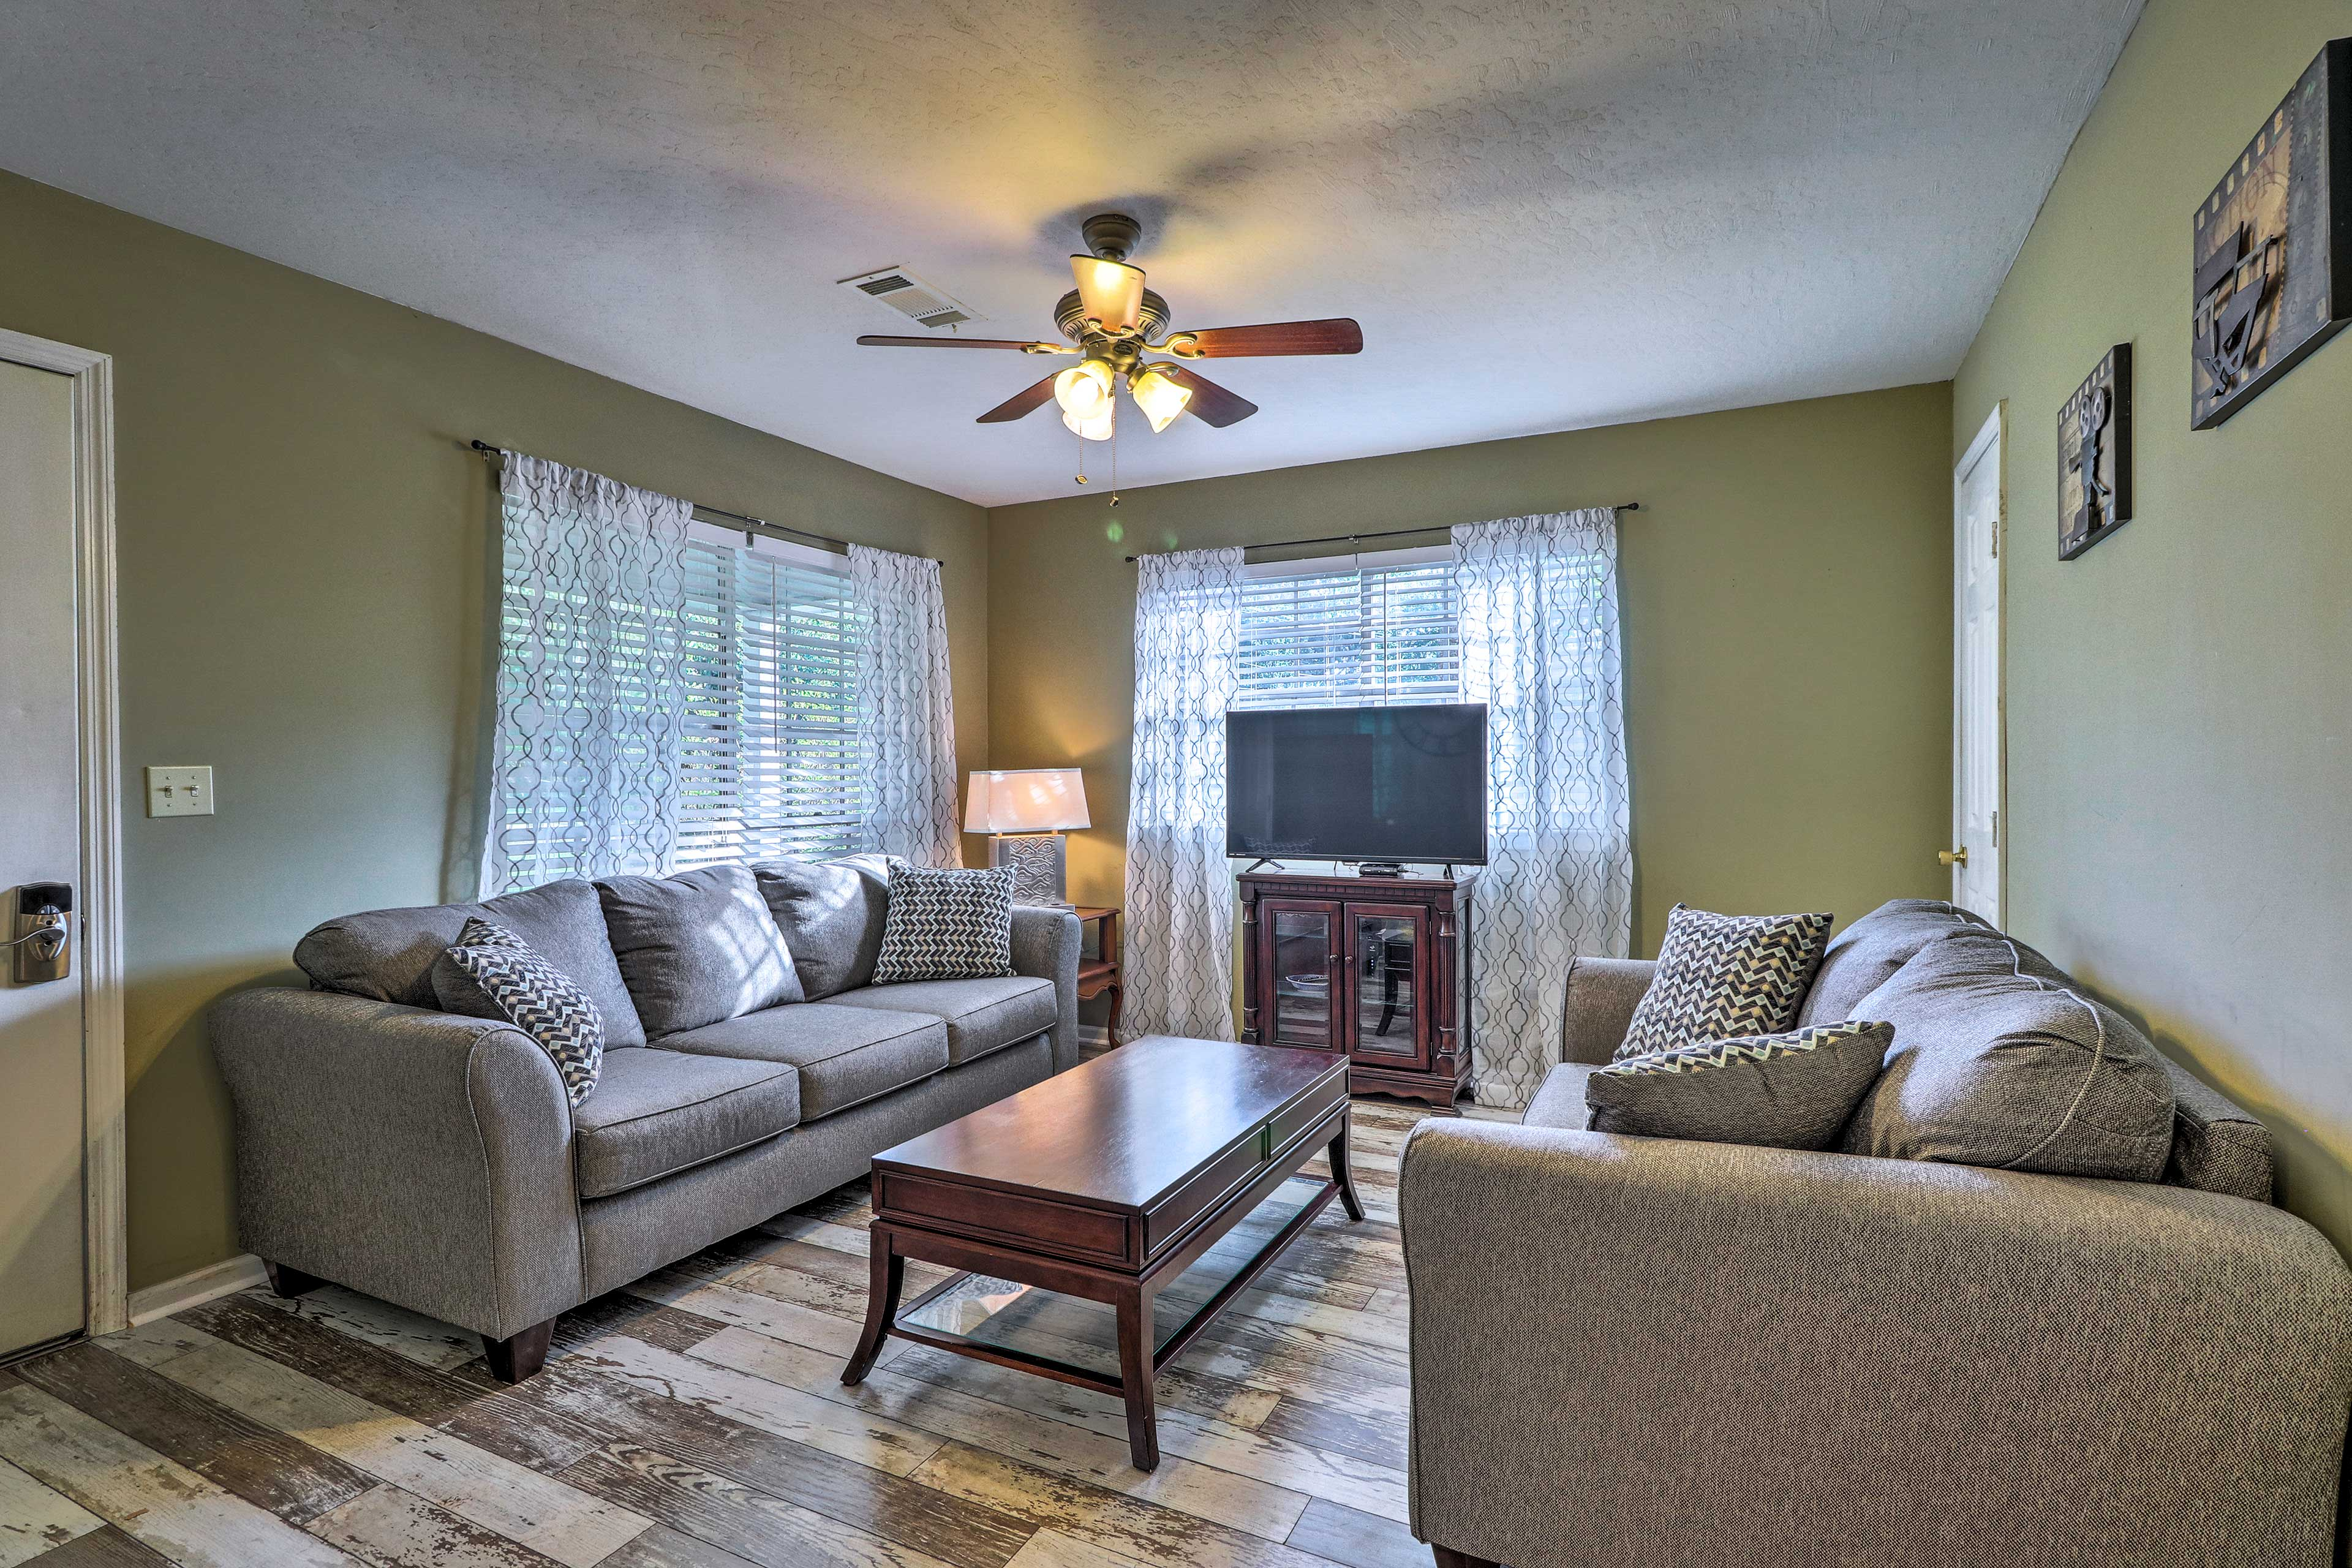 With 1,438 square feet, 3 bedrooms, & 1.5 baths, this house is perfect for 6!